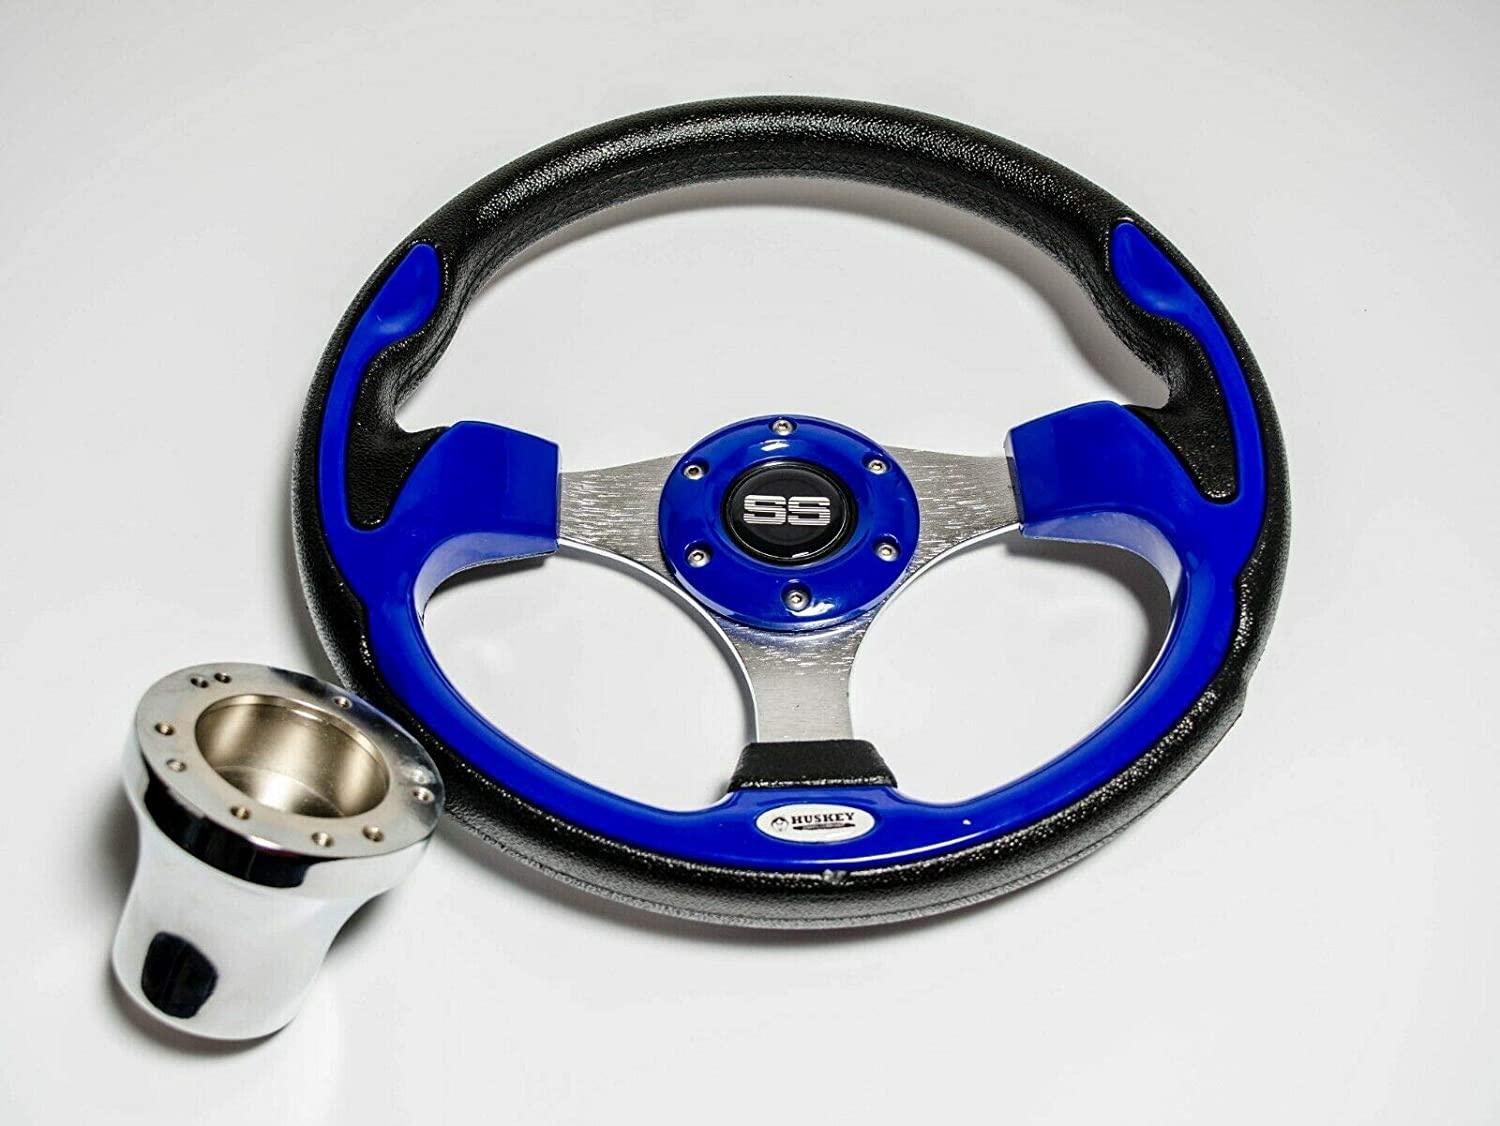 Huskey 12.5 All items free shipping Inch Classic Cobalt Blue wi Cart Steering Wheel Golf Detroit Mall